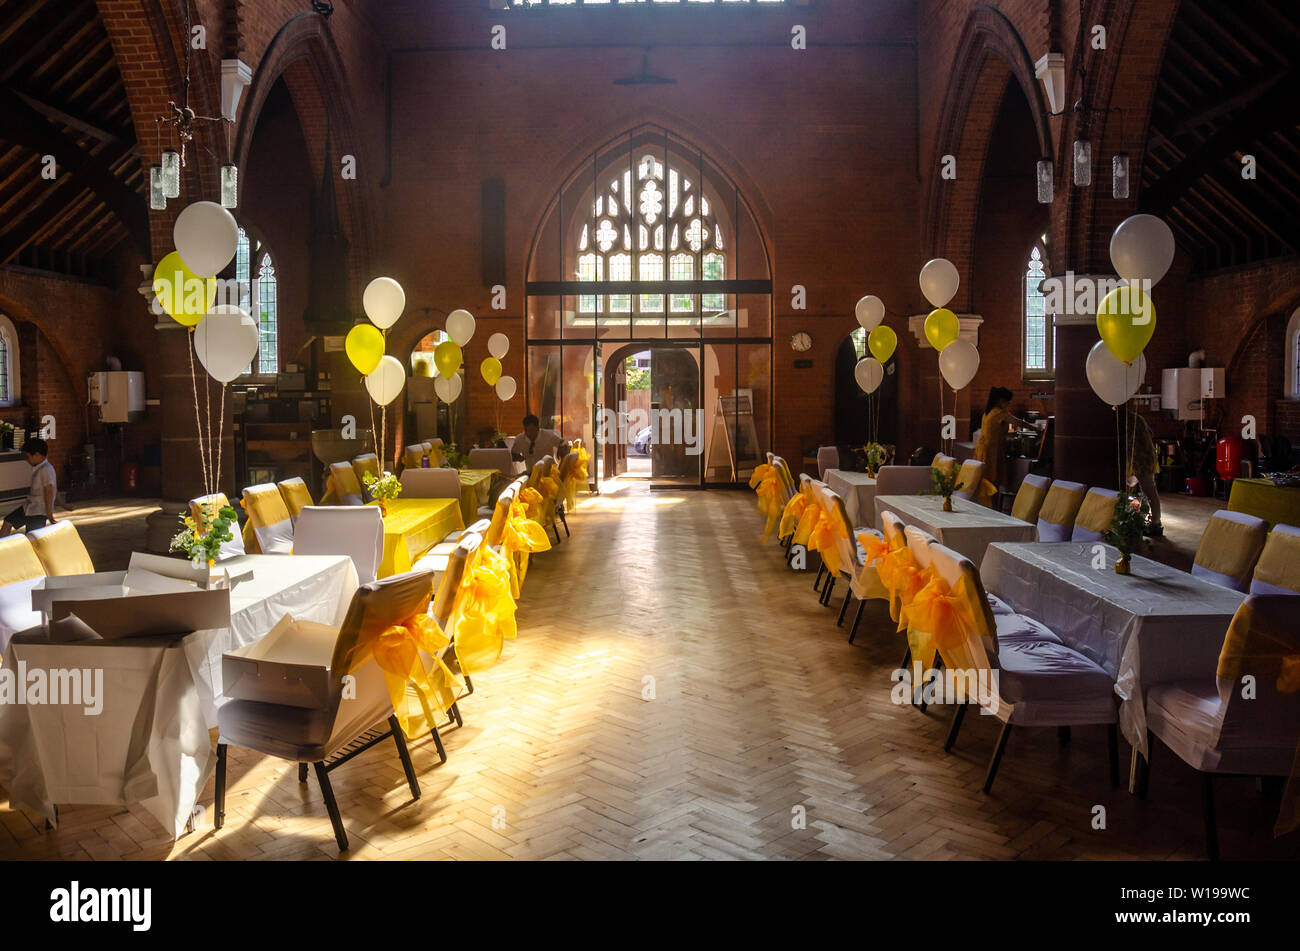 a-church-hall-laid-out-with-tables-and-chairs-dressed-in-white-fabric-with-yellow-ribbon-bows-ready-for-a-party-or-reception-W199WC.jpg